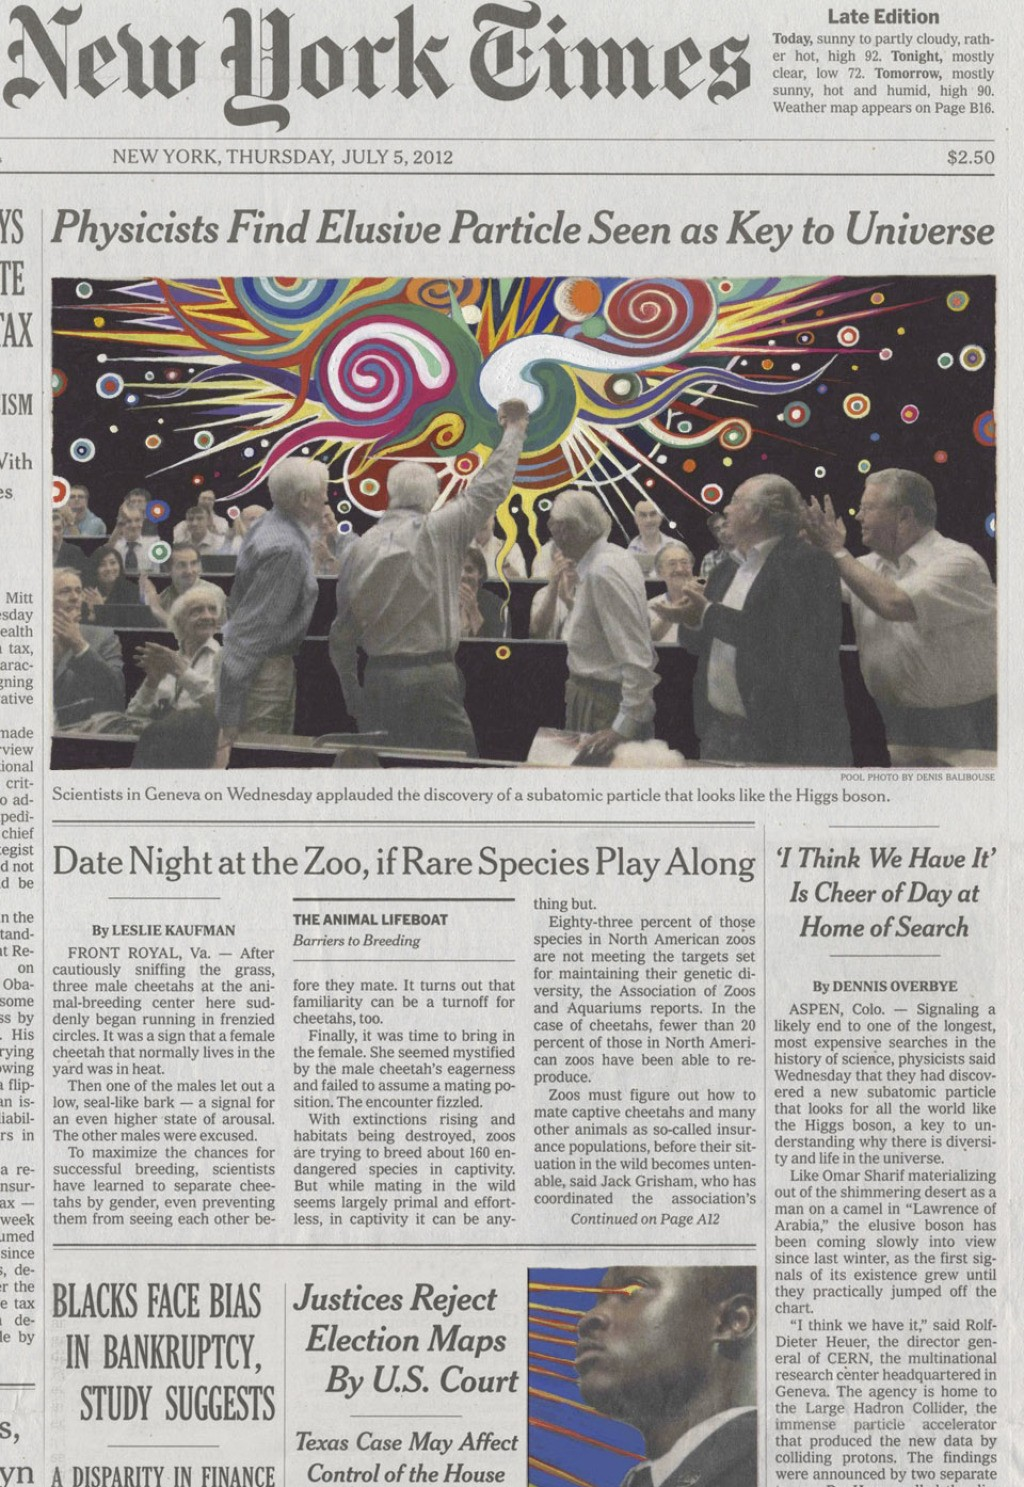 Fred Tomaselli, July 5, 2012